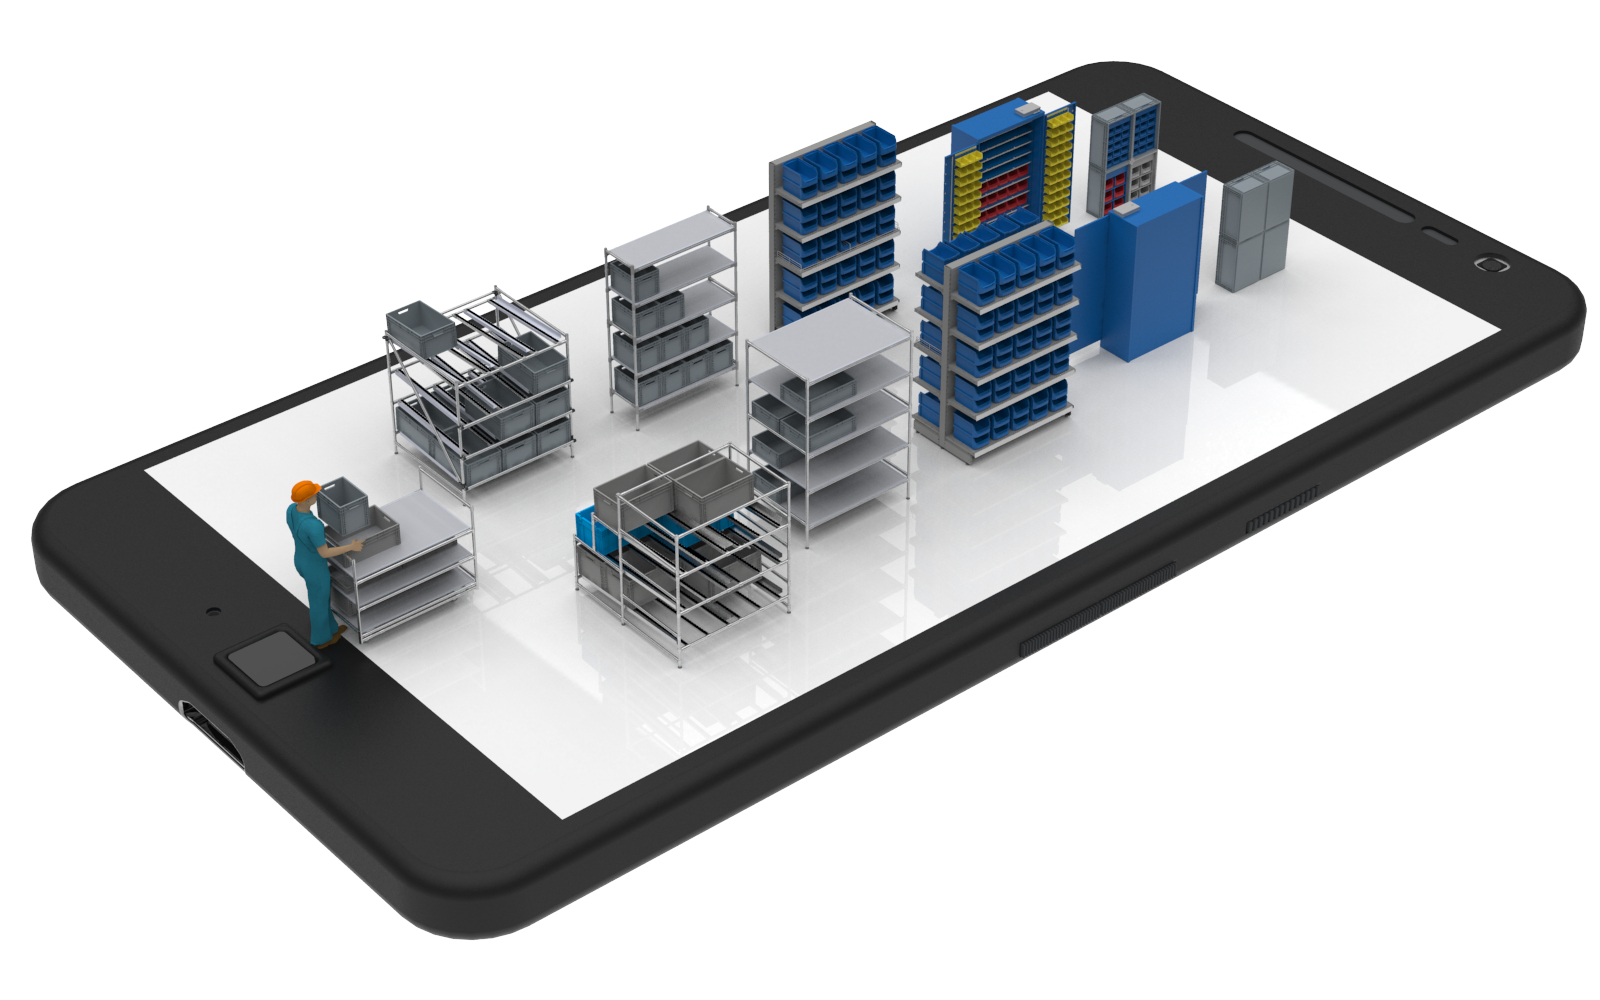 Storage Location Manager products